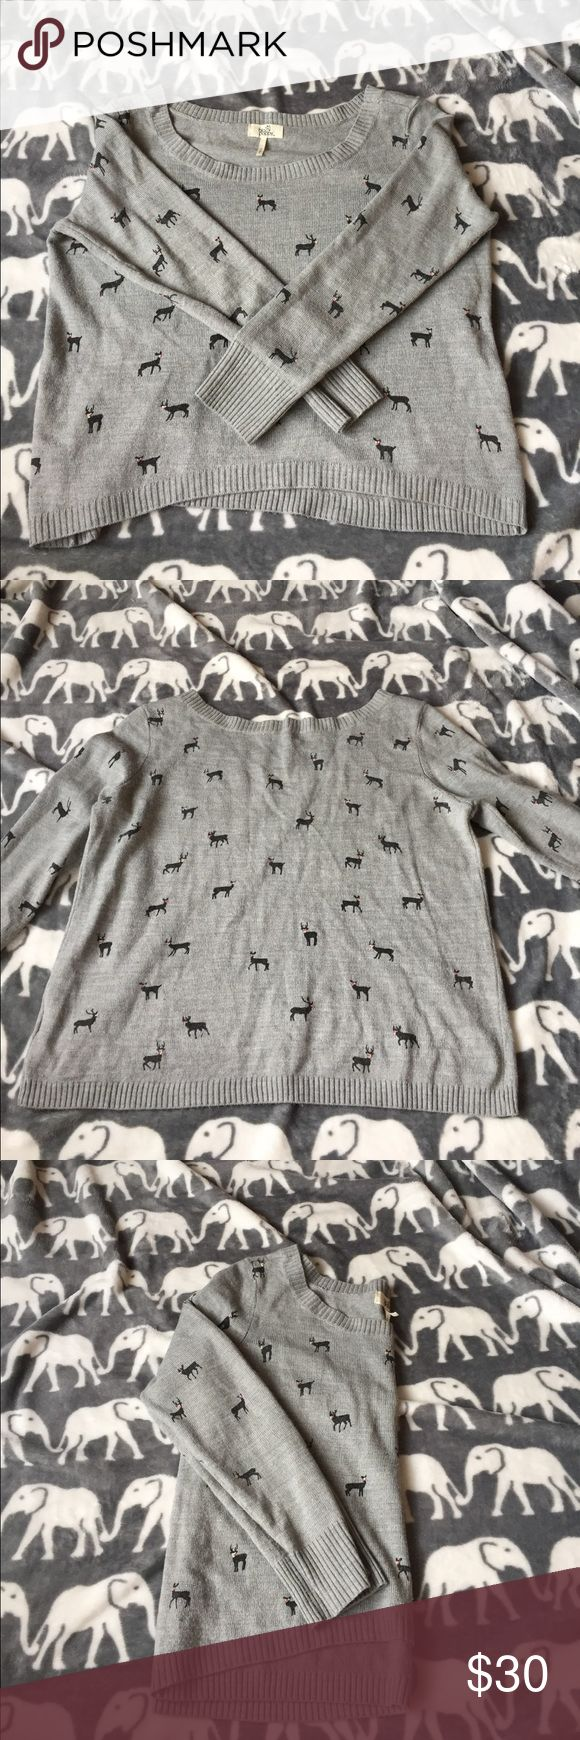 Pacsun Reindeer Sweater size small Size small gray reindeer sweater from Pacsun PacSun Sweaters Crew & Scoop Necks